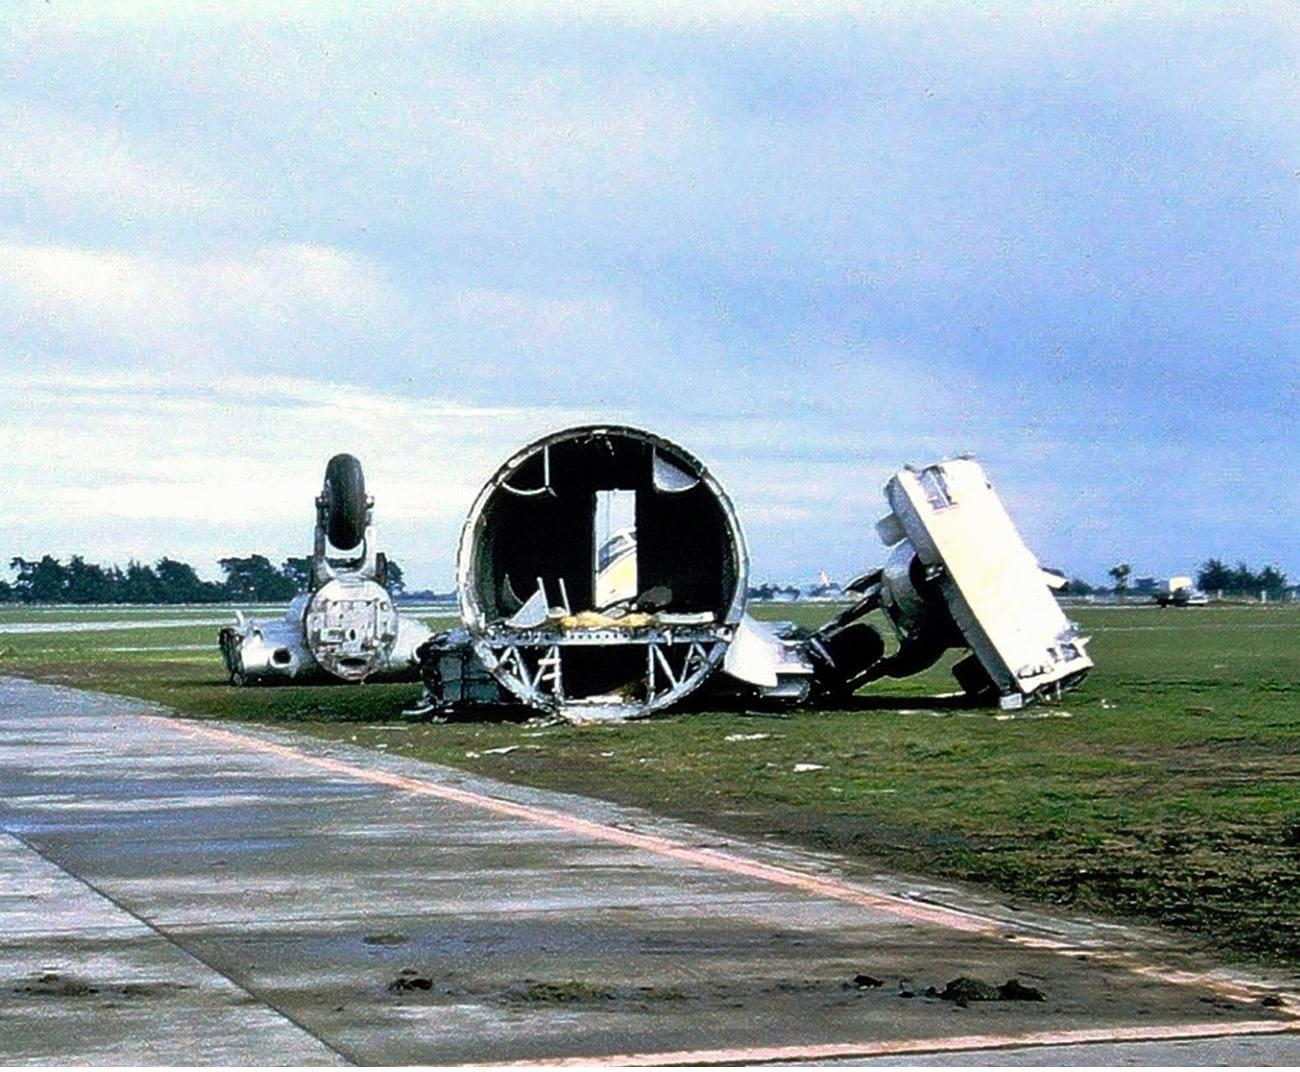 The remains of the fuselage centre section and severed main wheels of an RNZAF Hastings CMk3 – either NZ5802, or NZ5803. Some of the cockpit windows are just visible through the cockpit entry door as seen in the middle of the centre-fuselage section. Jim Barclay photo Ohakea July 1969